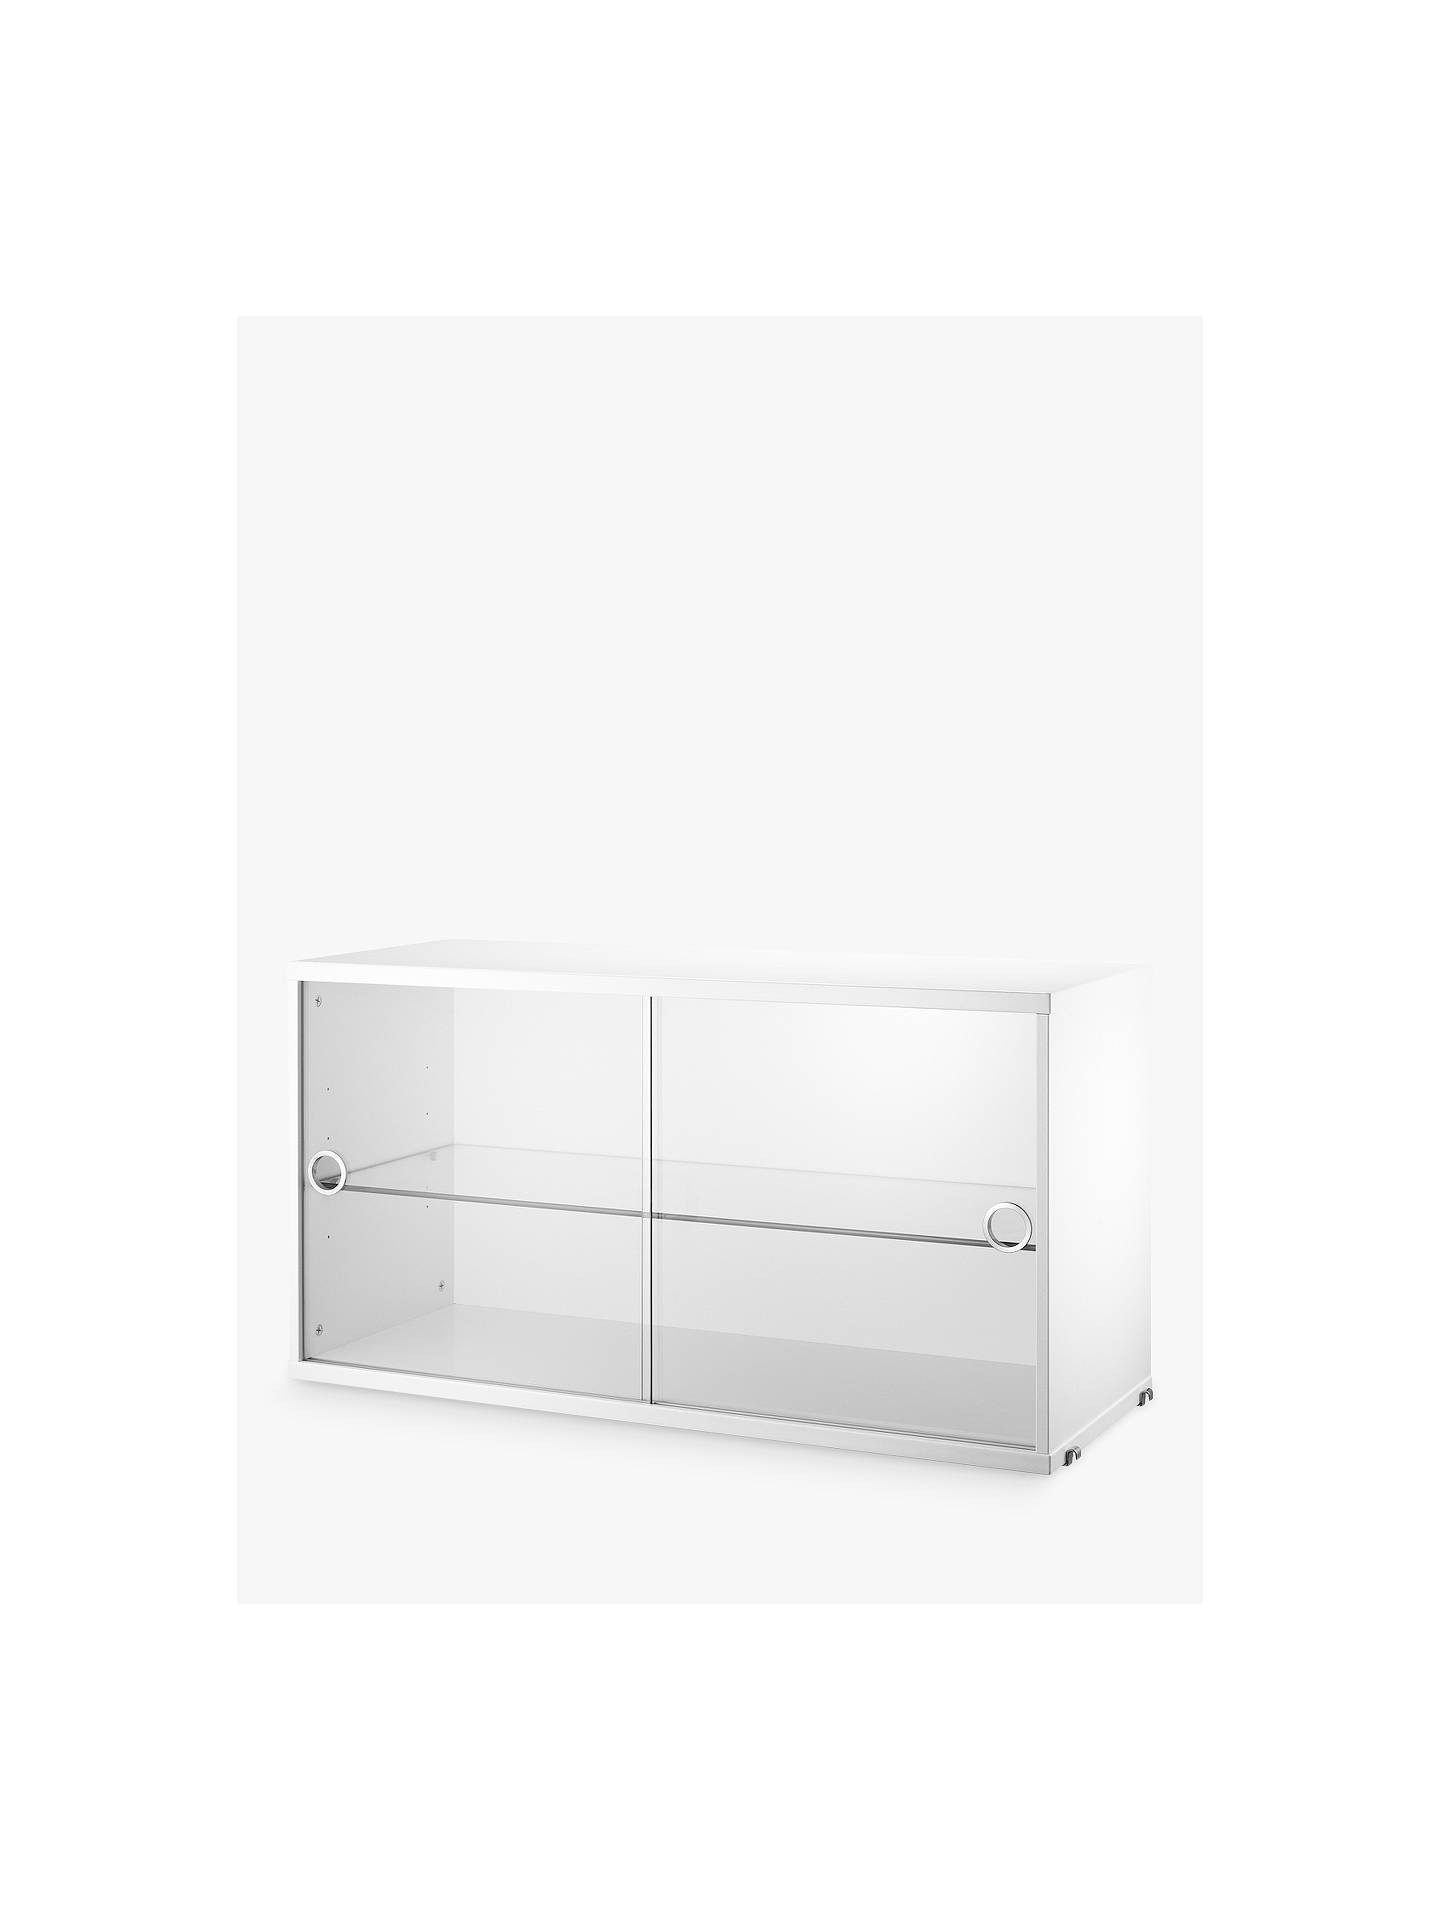 Storage Cabinets with Doors Beautiful String Storage Cabinet Section with Glass Sliding Doors White